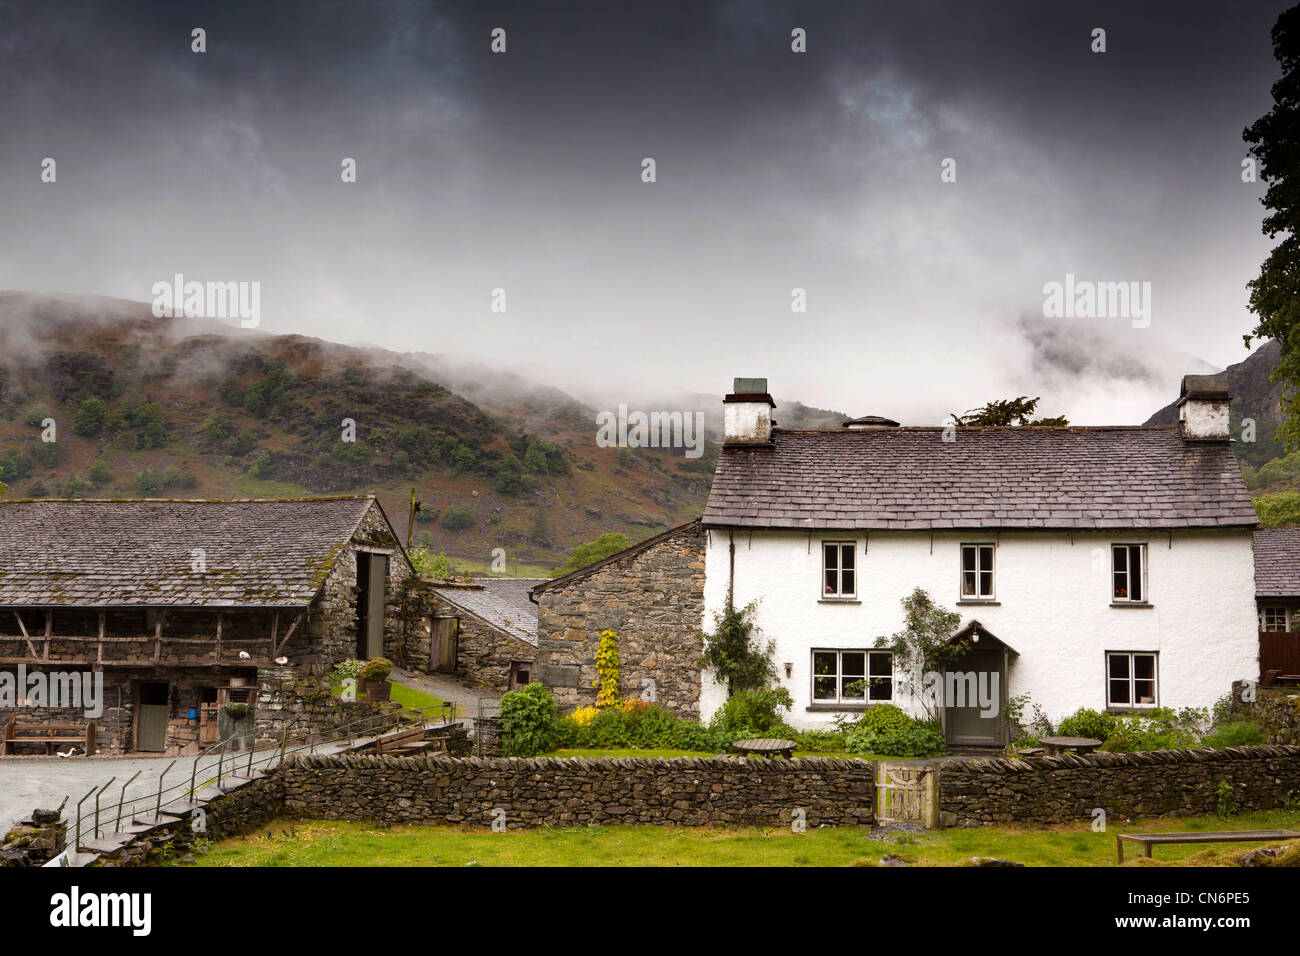 UK, Cumbria, Coniston, rain cloud approaching Yew Tree Farm, from Old Man of Coniston - Stock Image